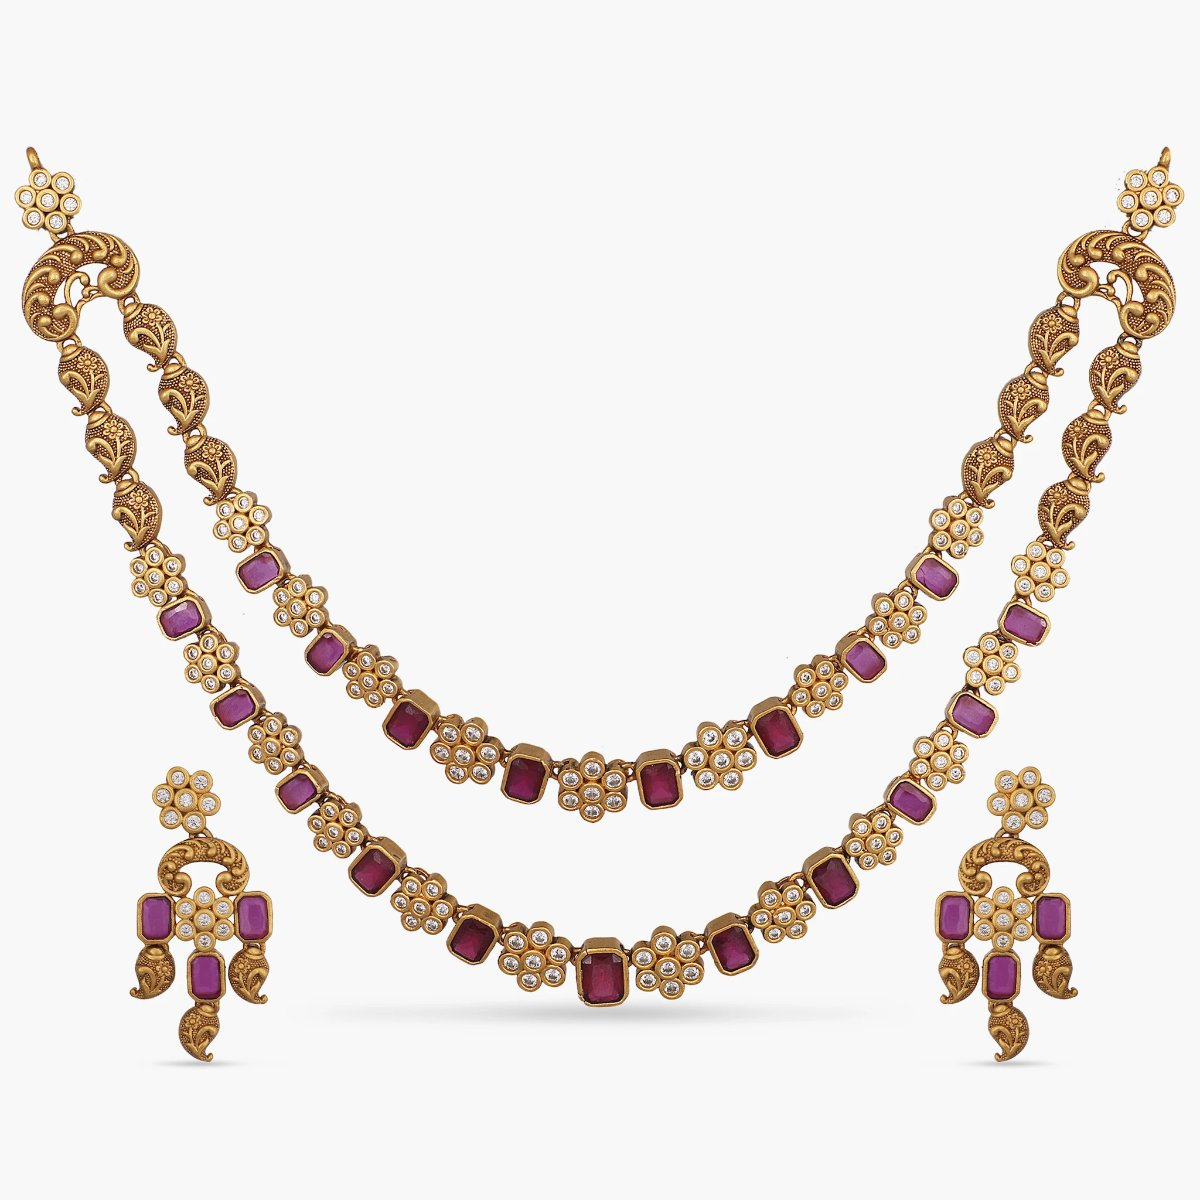 Ikshita Antique Necklace Set